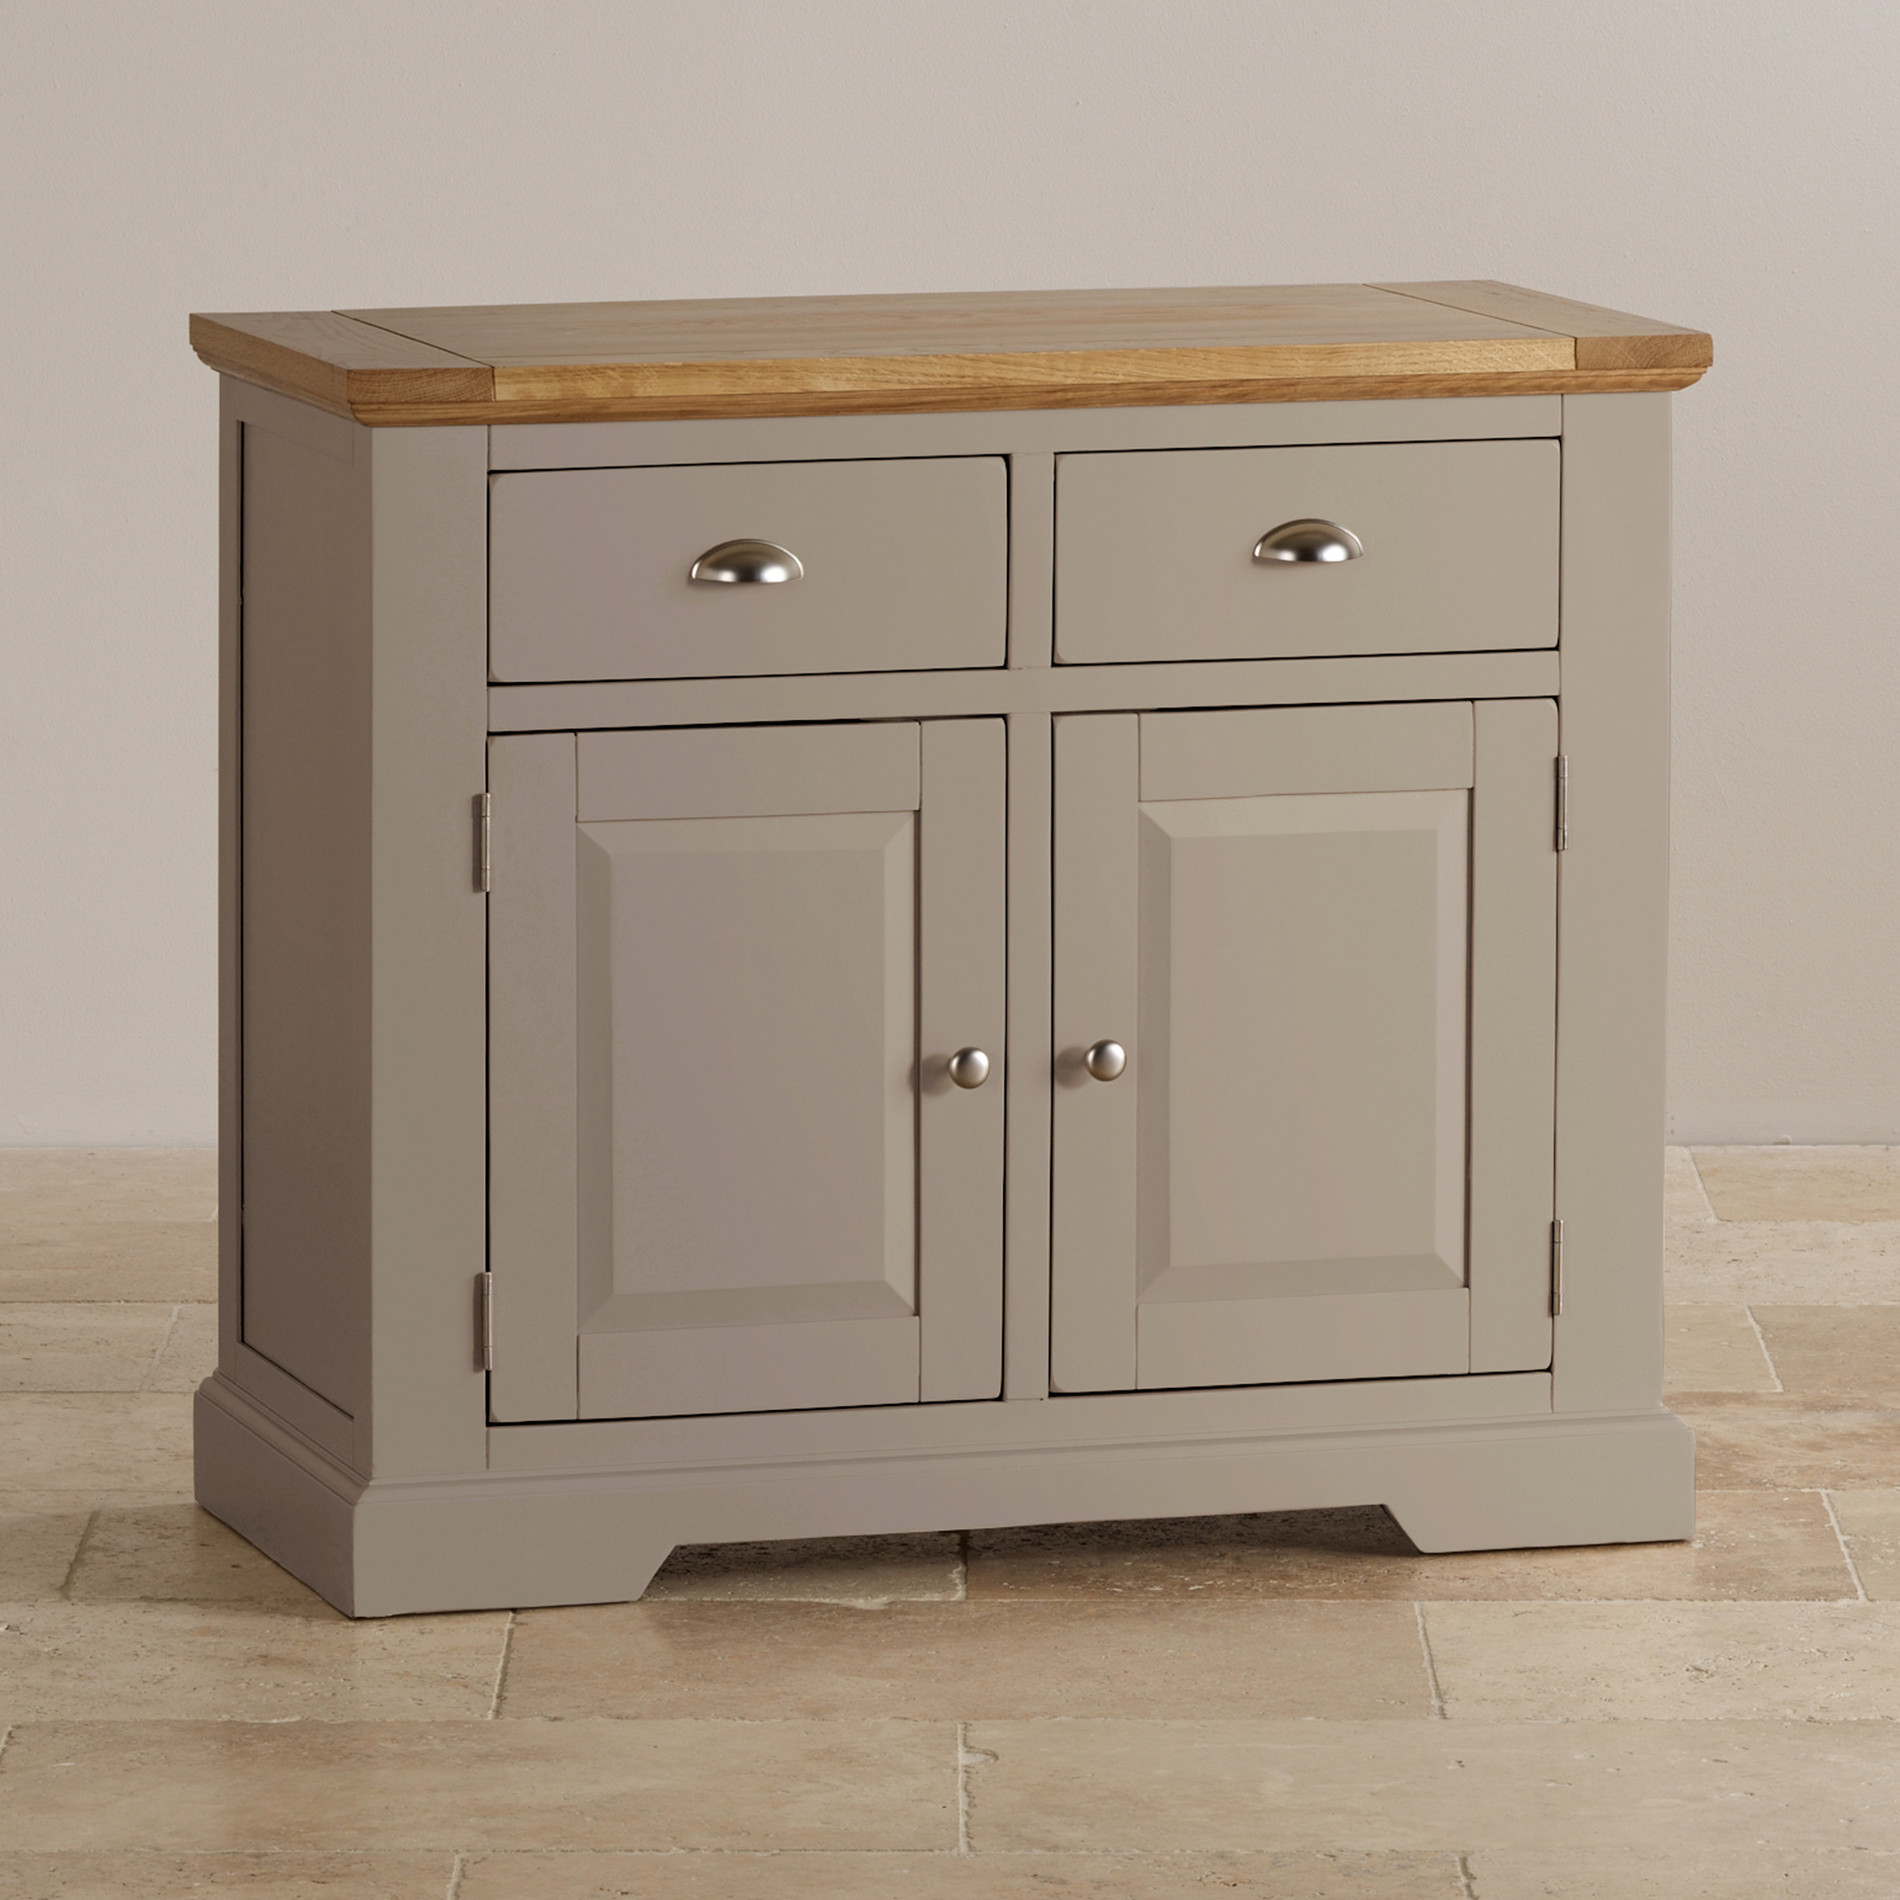 Natural oak and light grey painted small sideboard for Painted buffet sideboard